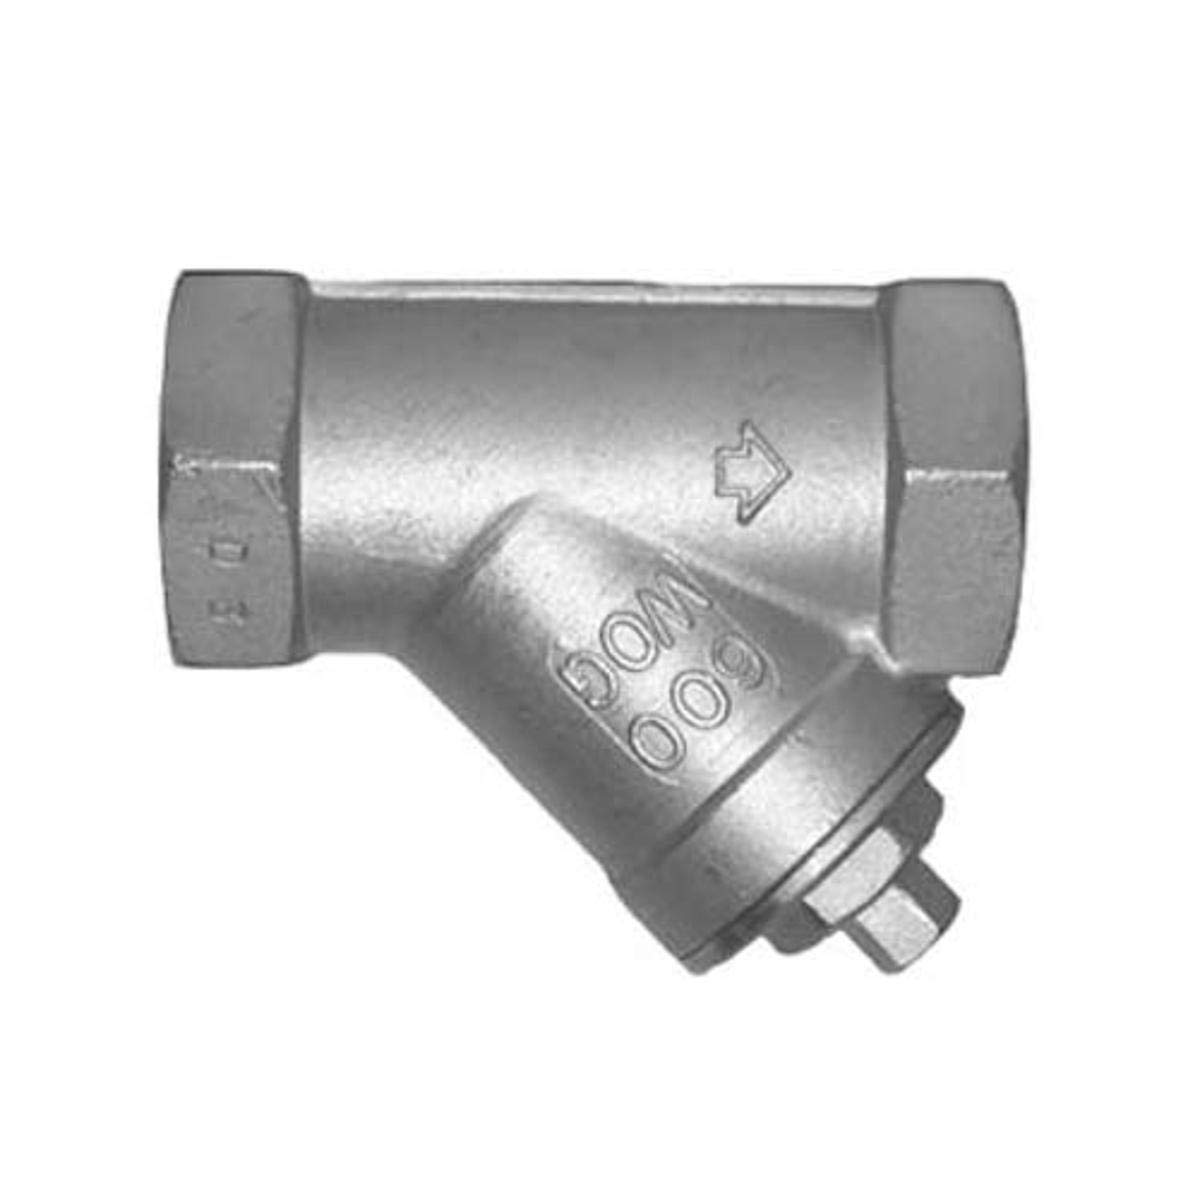 0.7x2.6x0.7.316 Stainless Steel 0.7x2.6x0.7.316 Stainless Steel Legend Valve 113-494 Stainless Y-Strainer